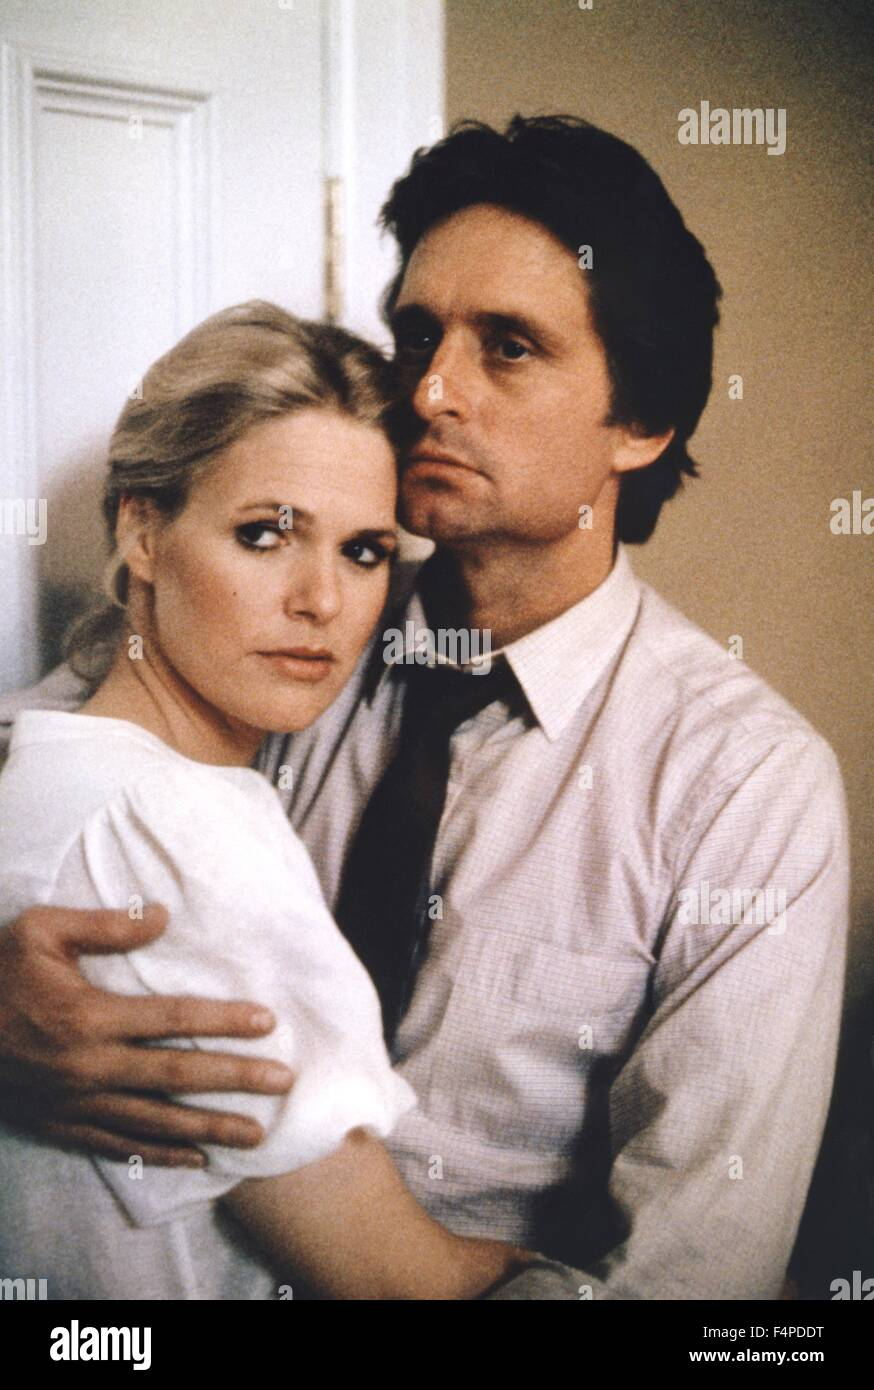 Sharon Gless, Michael Douglas / The Star Chamber 1983 directed by Peter Hyams - Stock Image